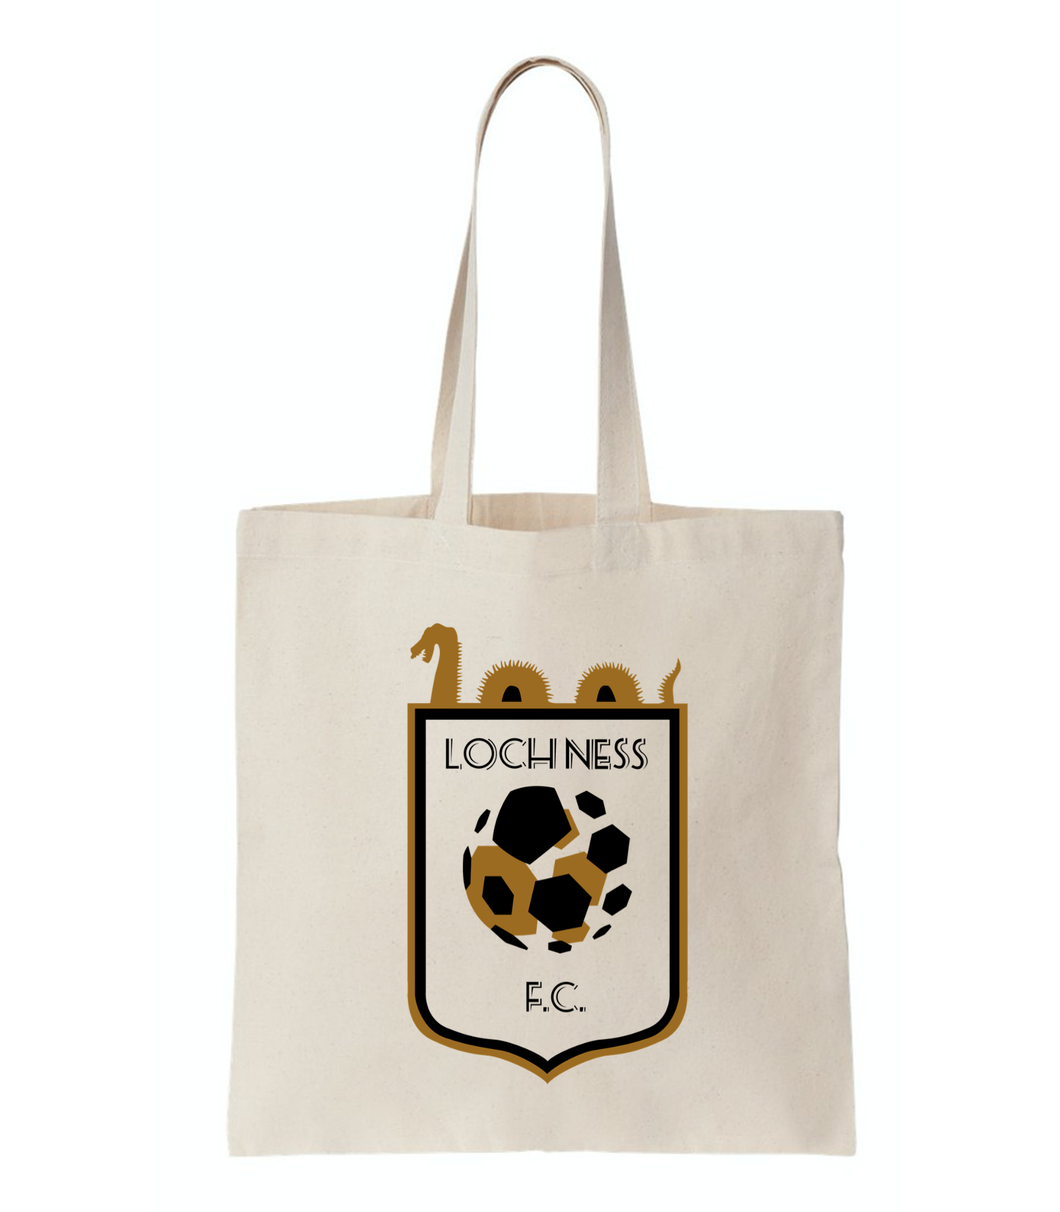 Loch Ness FC Tote Bags (3 pack)